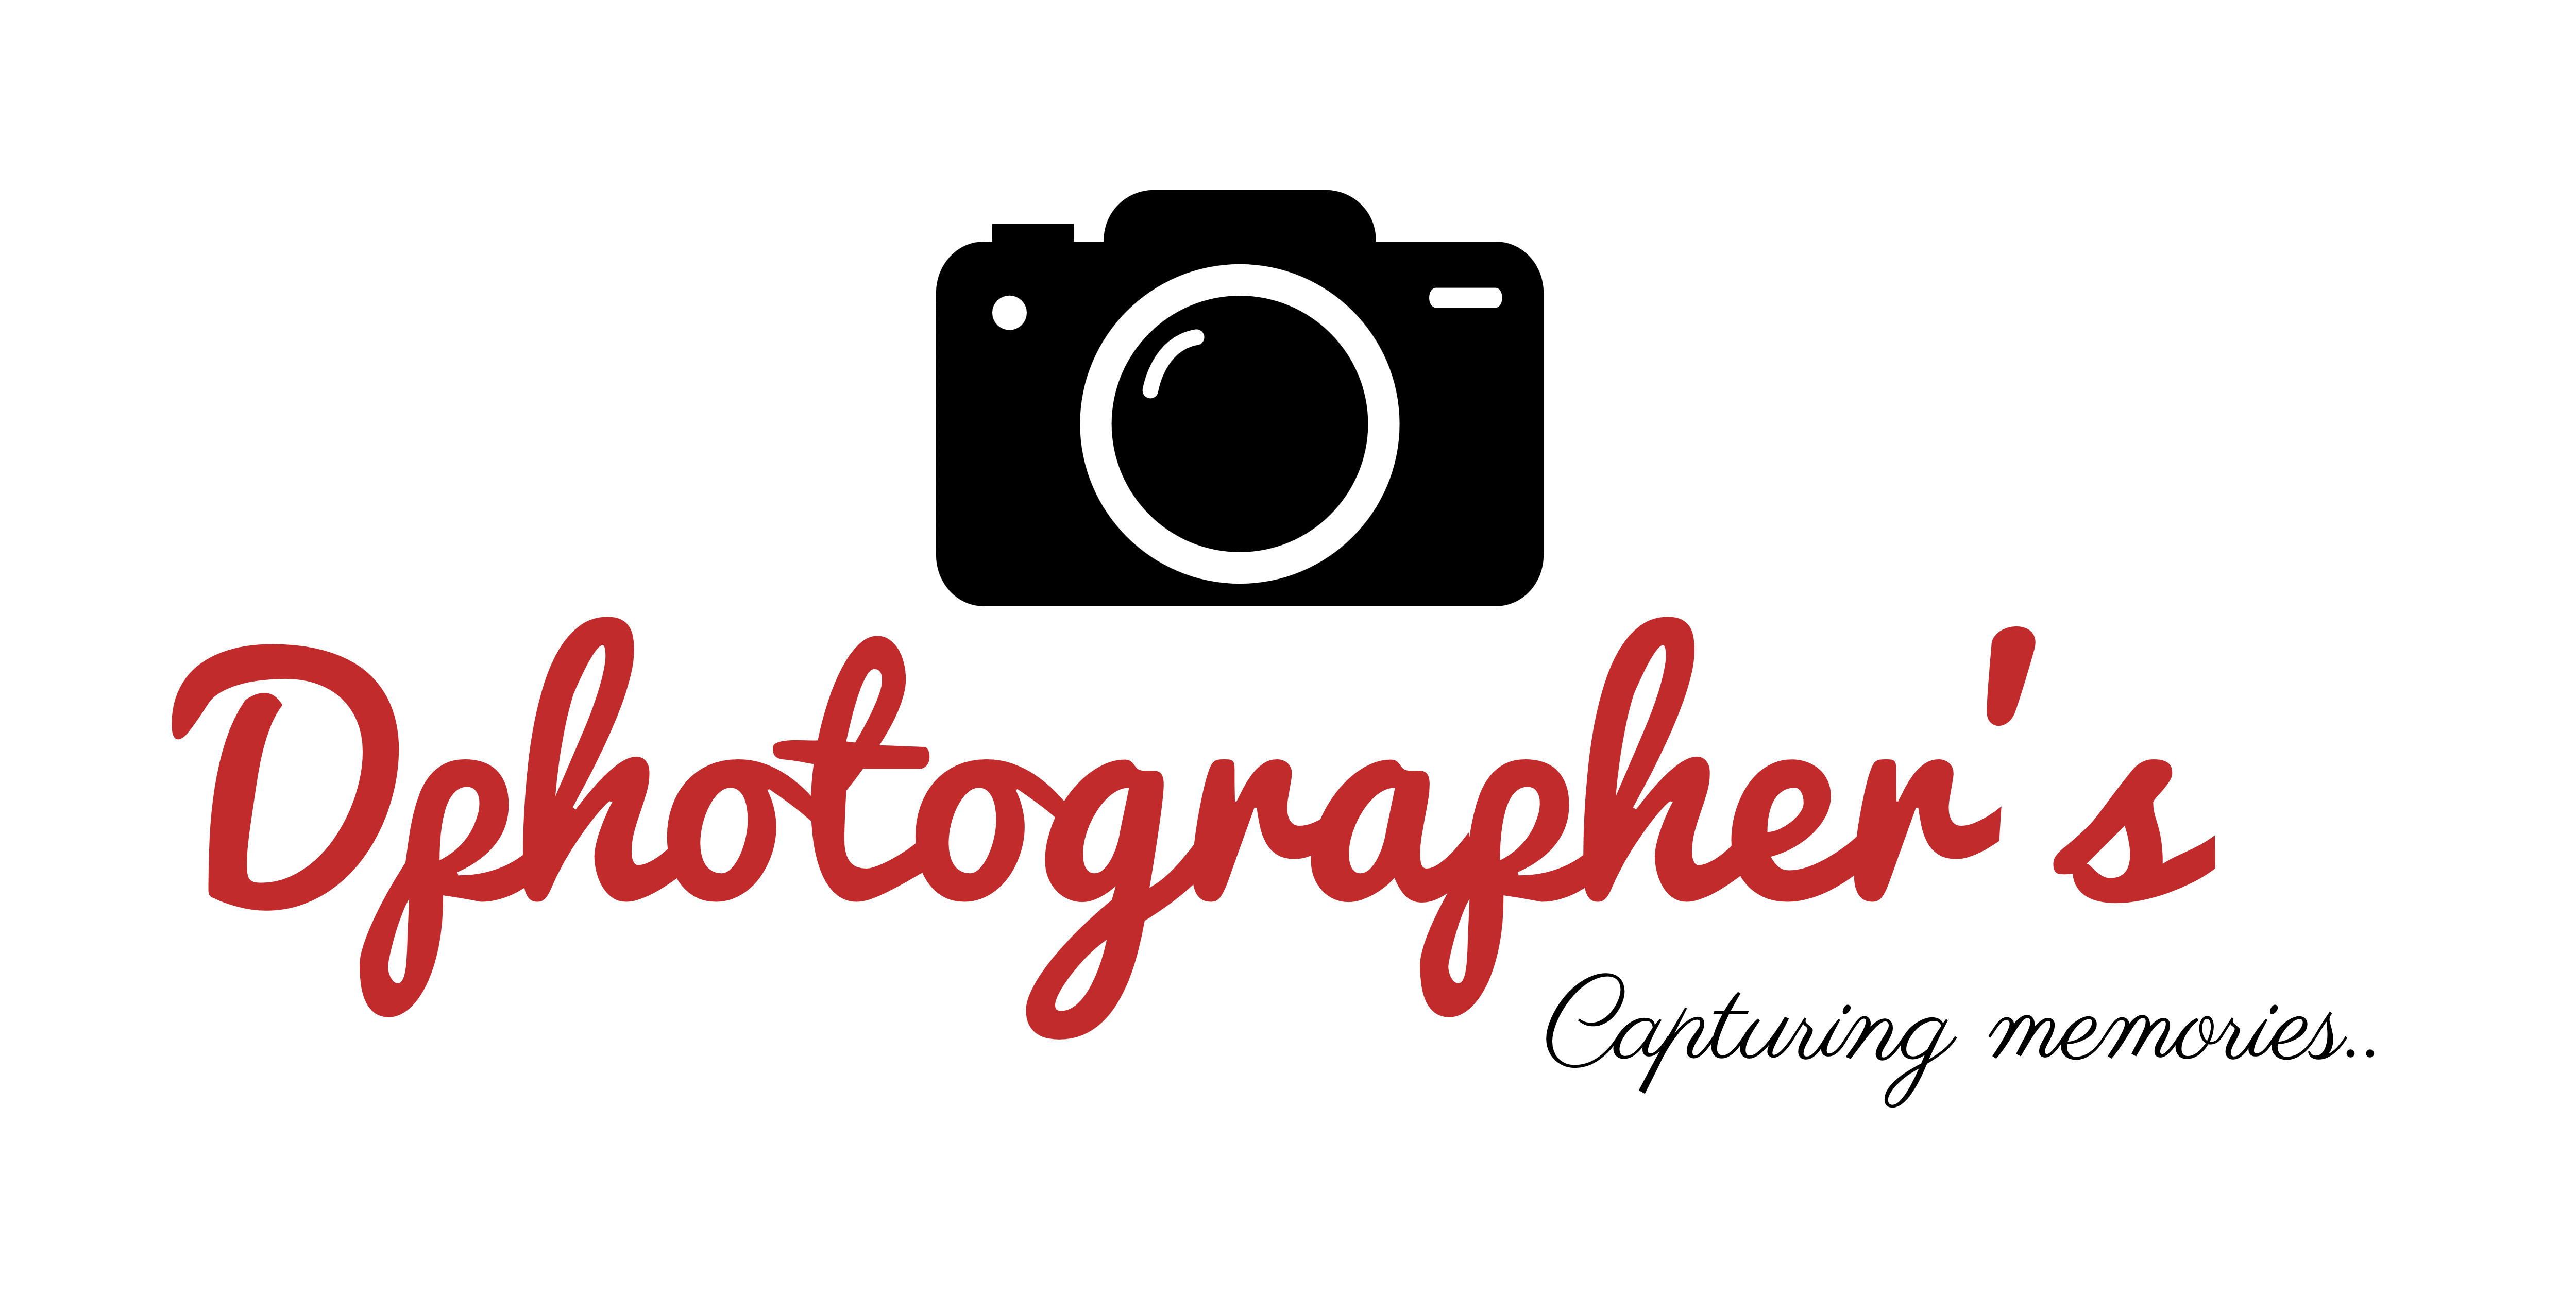 Videography Any Type